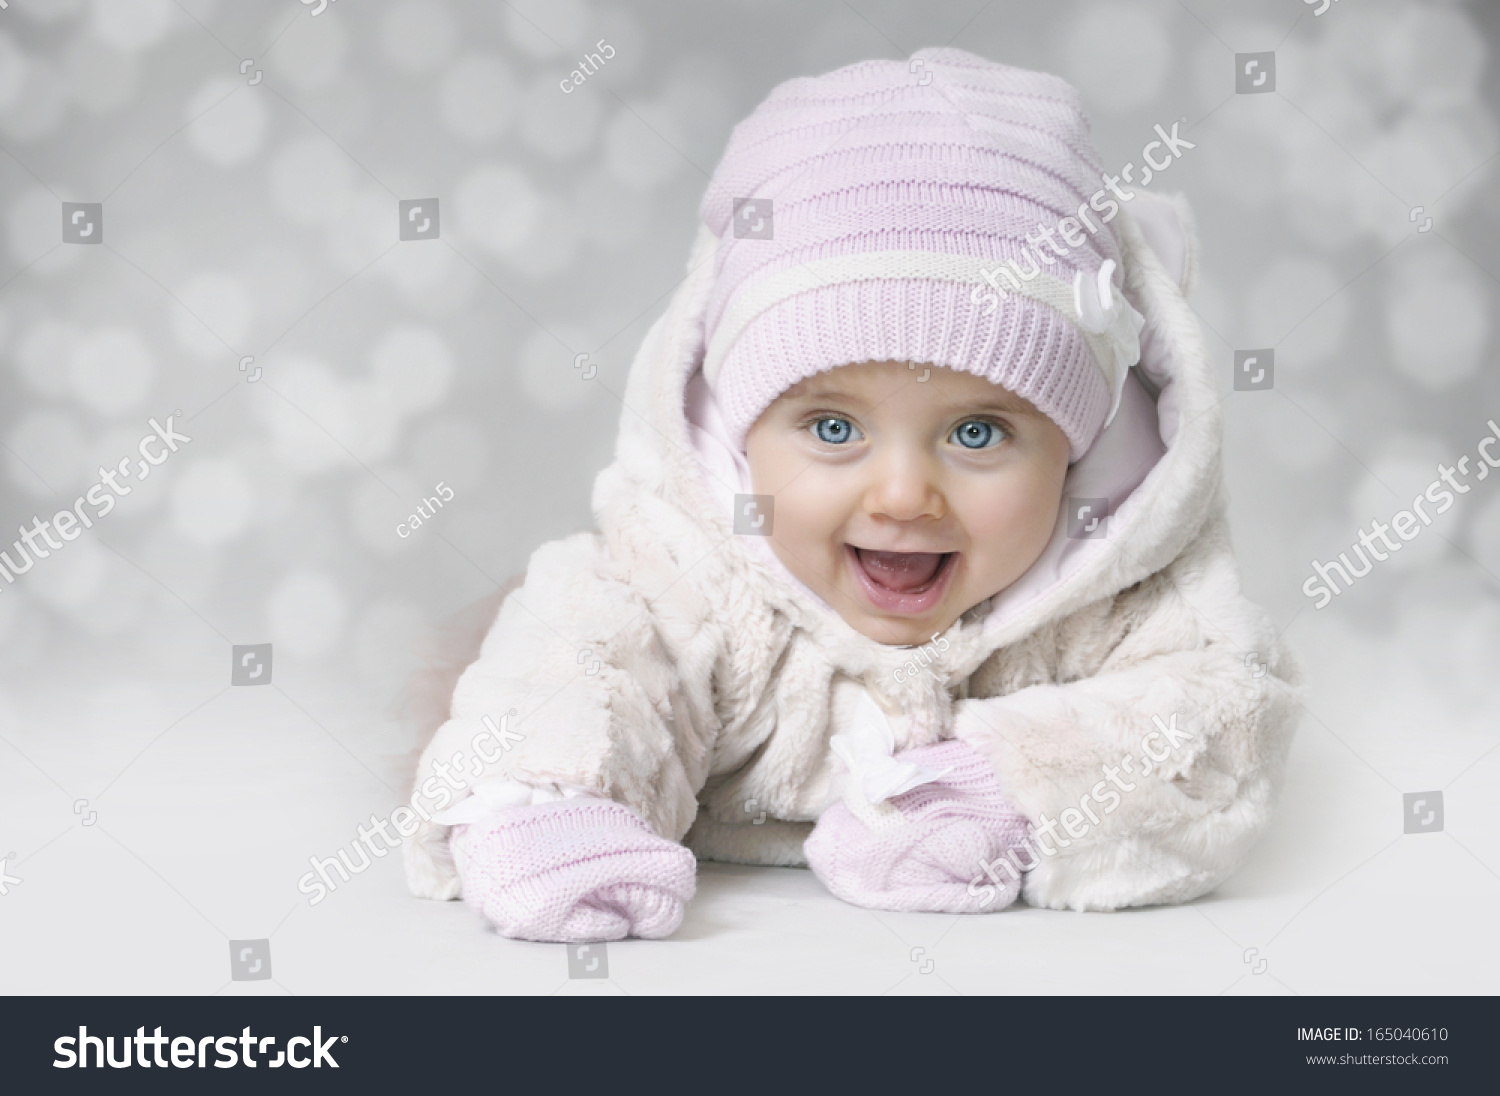 Shop for and buy baby girl winter clothes online at Macy's. Find baby girl winter clothes at Macy's.